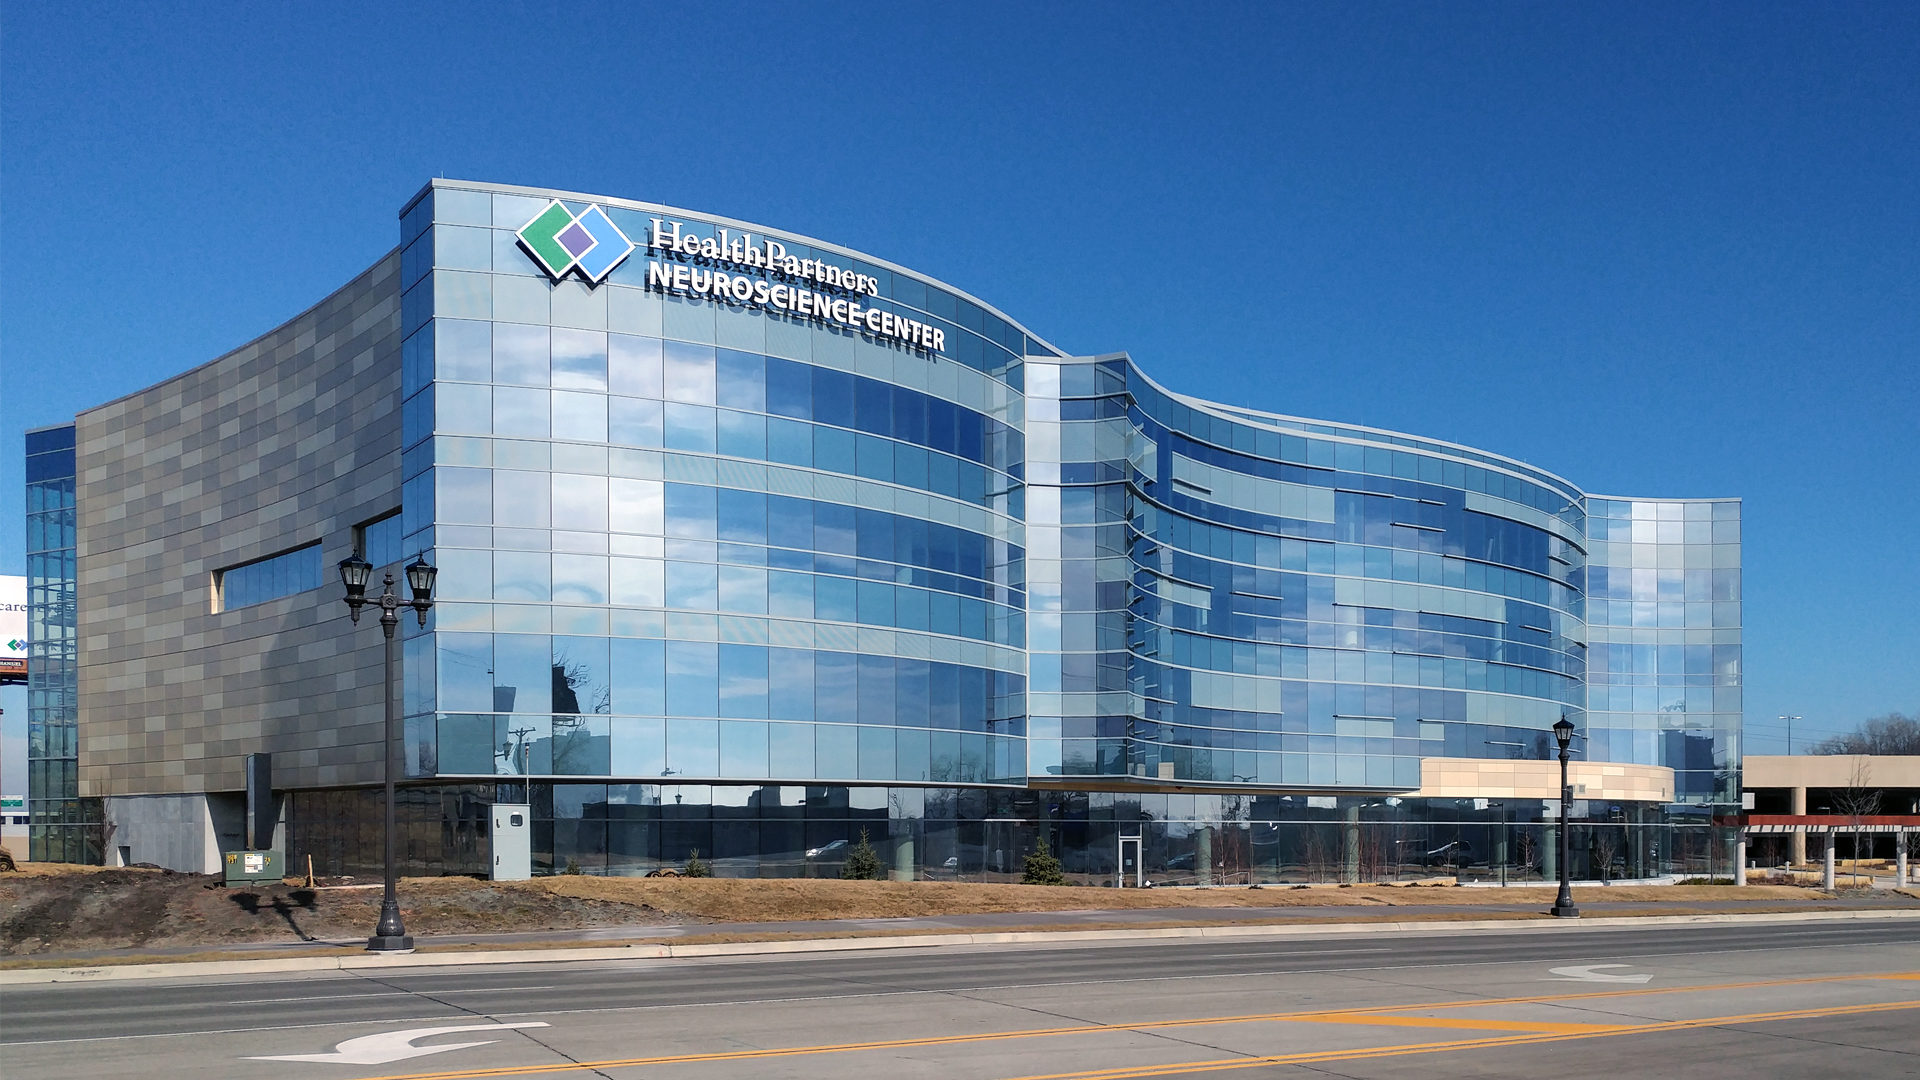 HealthPartners Neuroscience Center Exterior View of Glass Facade